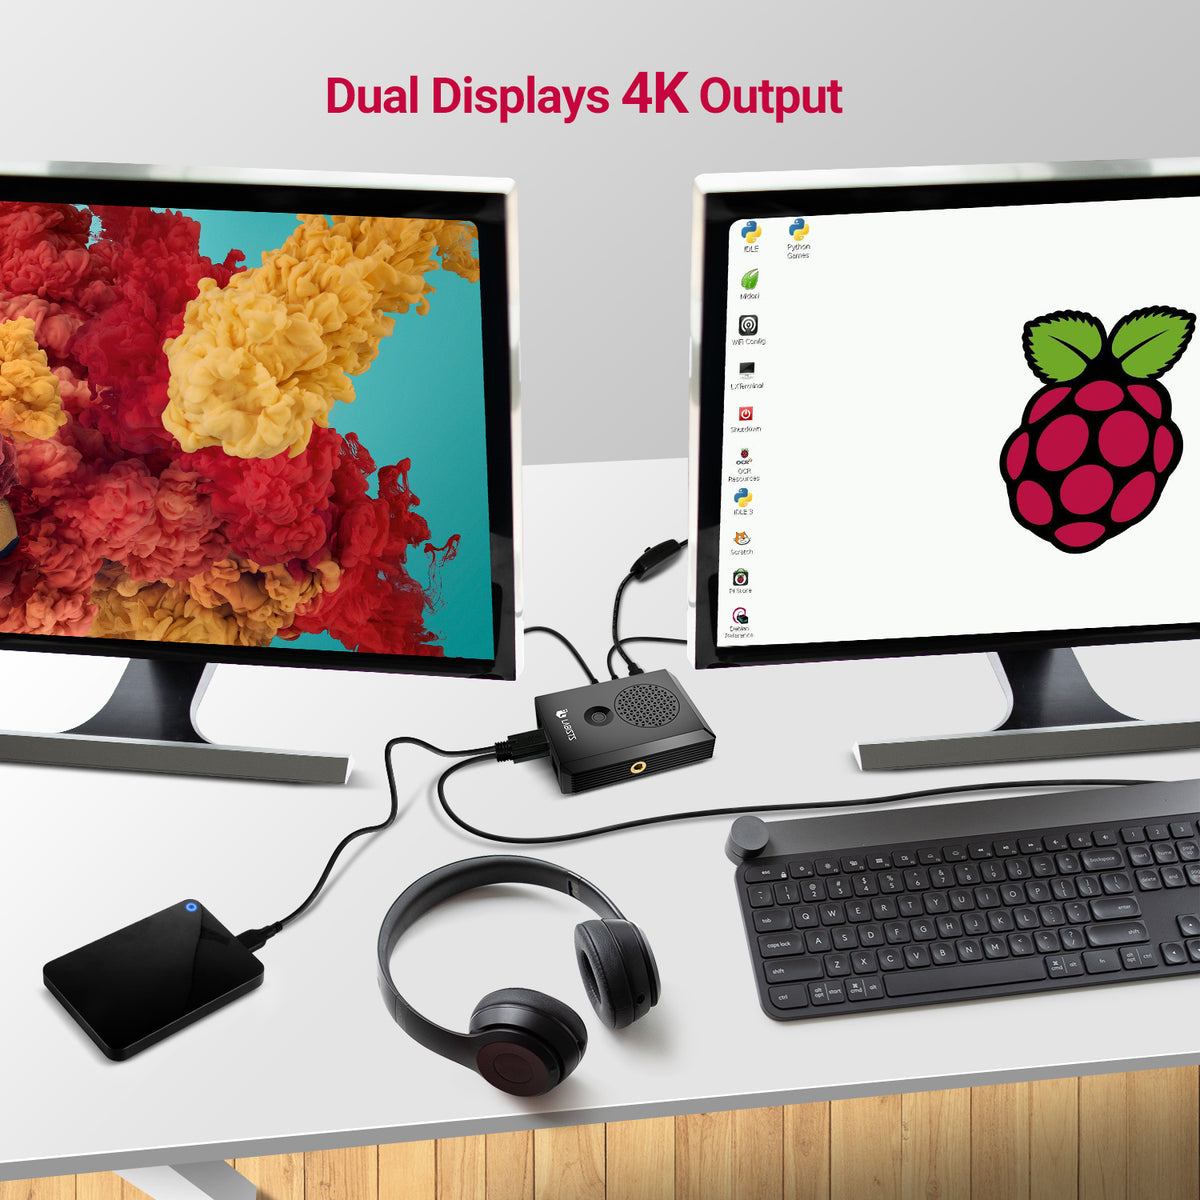 Raspberry Pi 4 dual displays 4K output